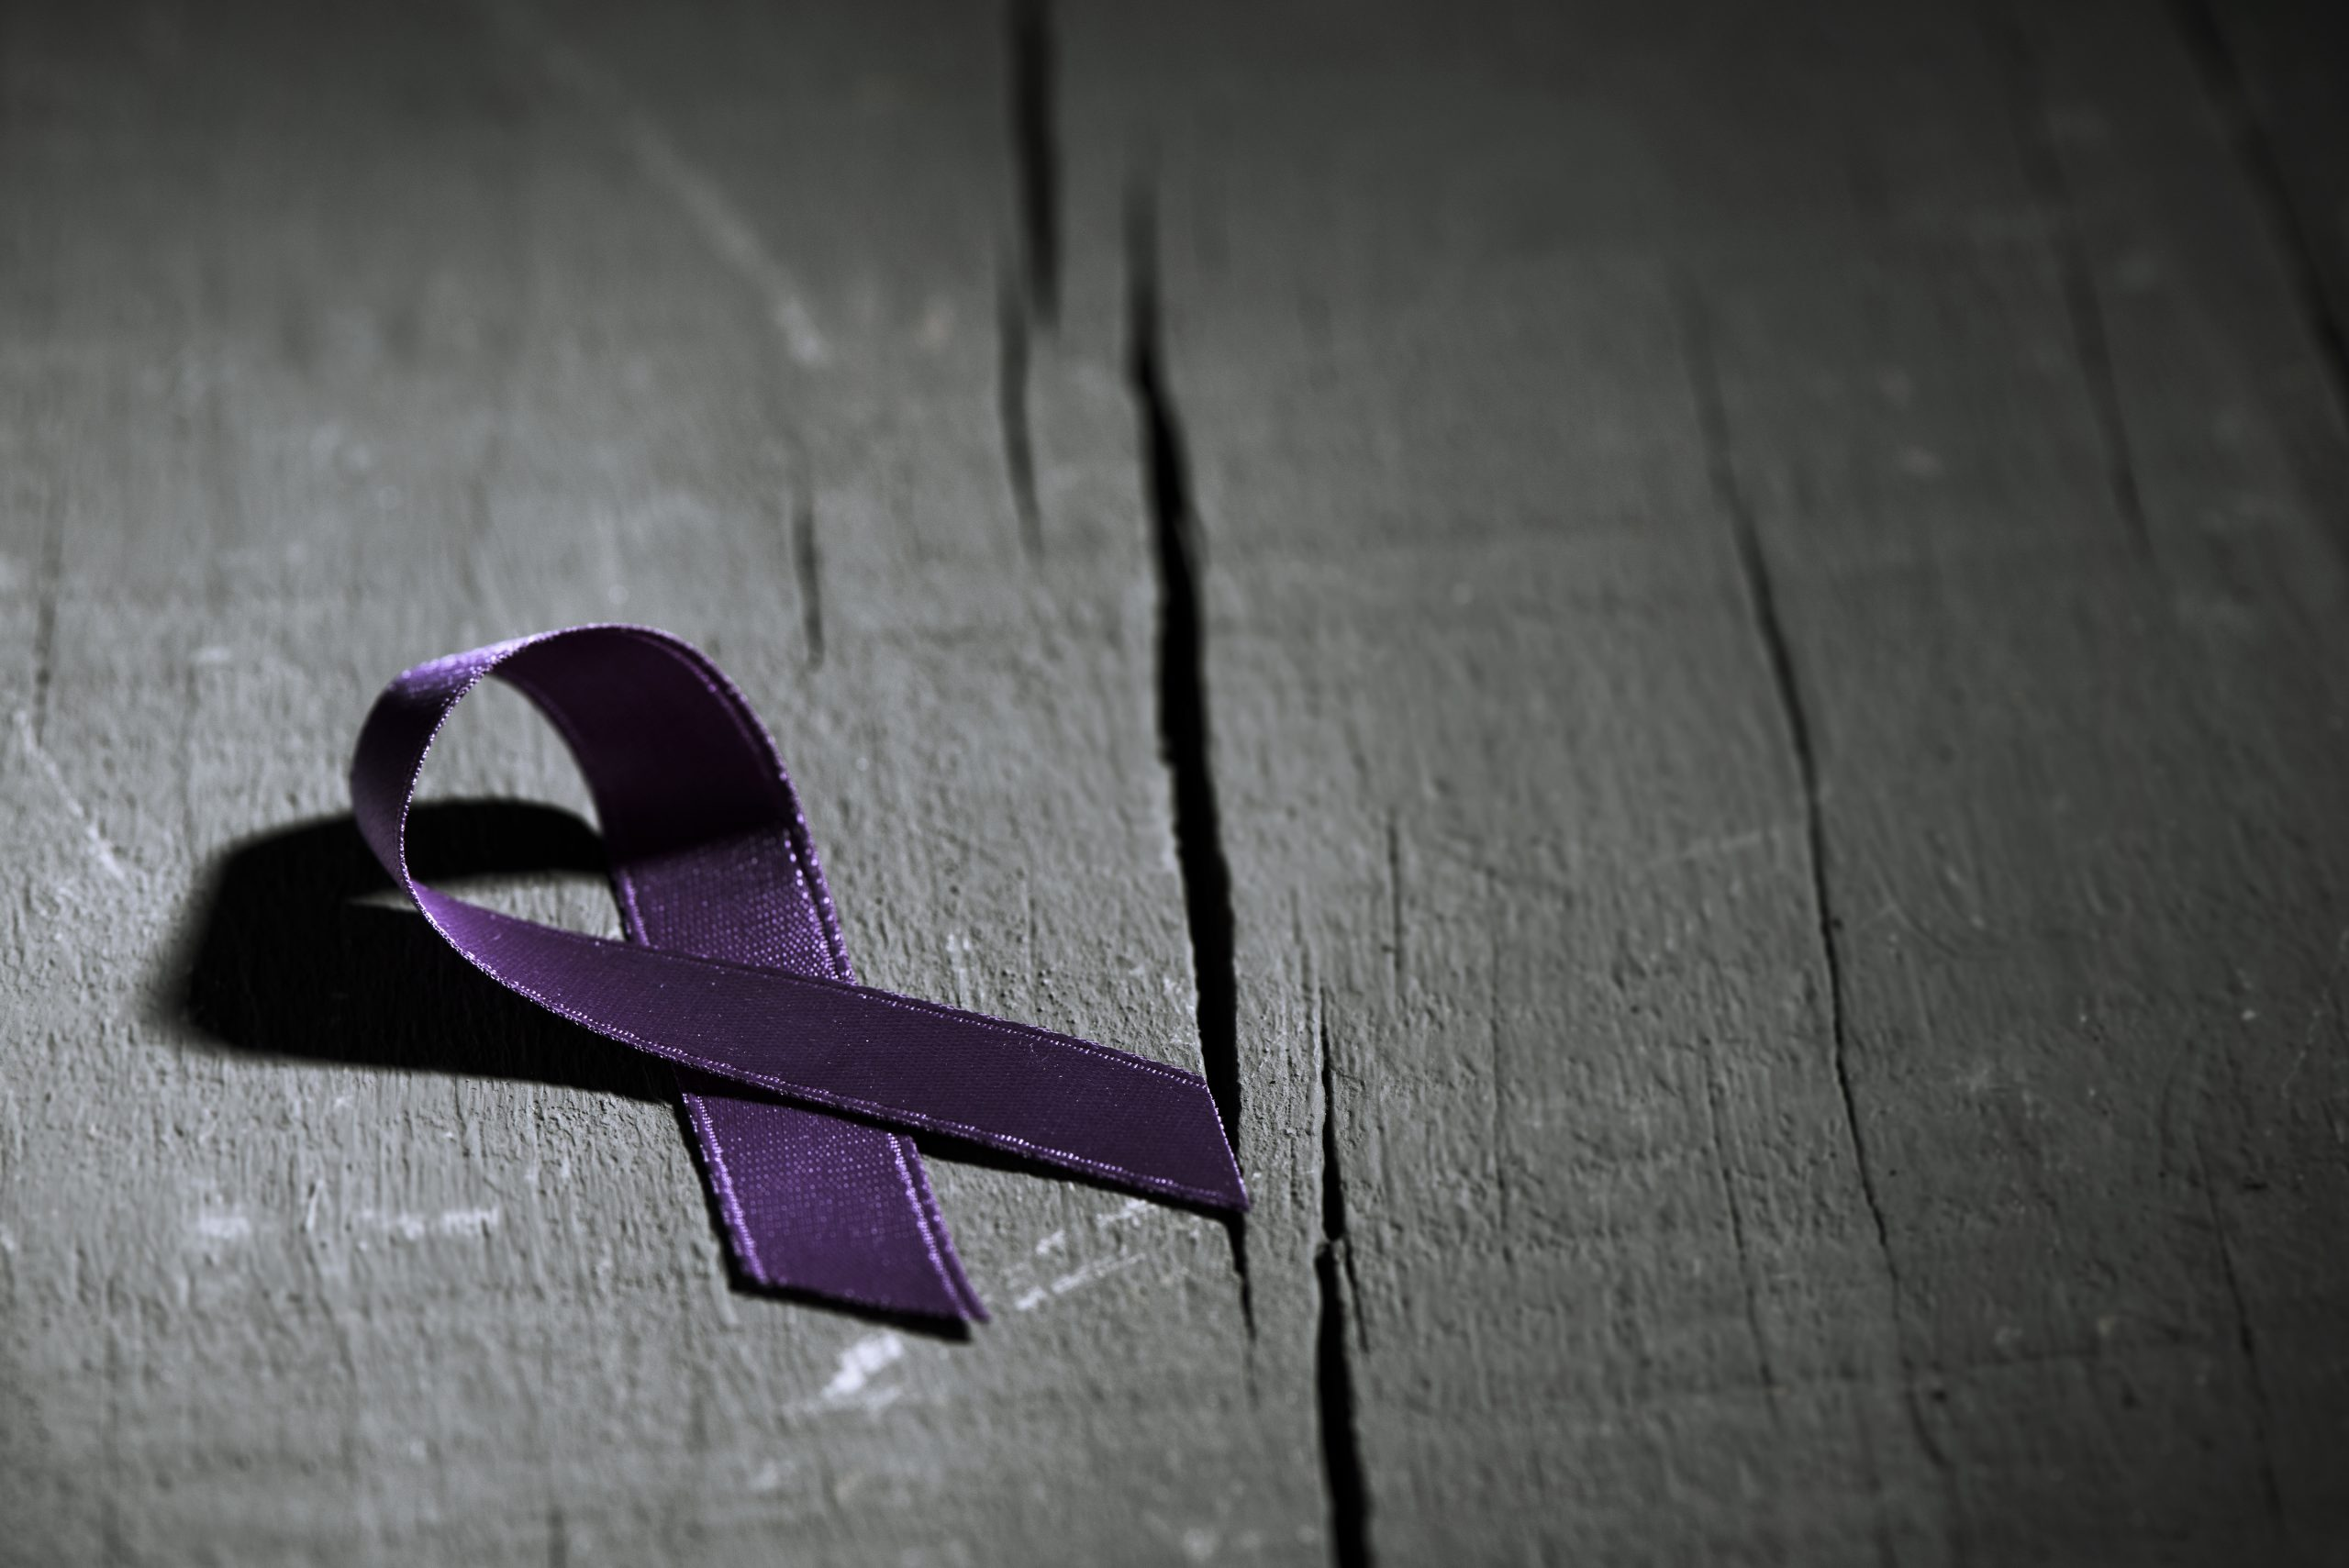 There is a purple domestic violence ribbon which is a direct symbol for domestic violence